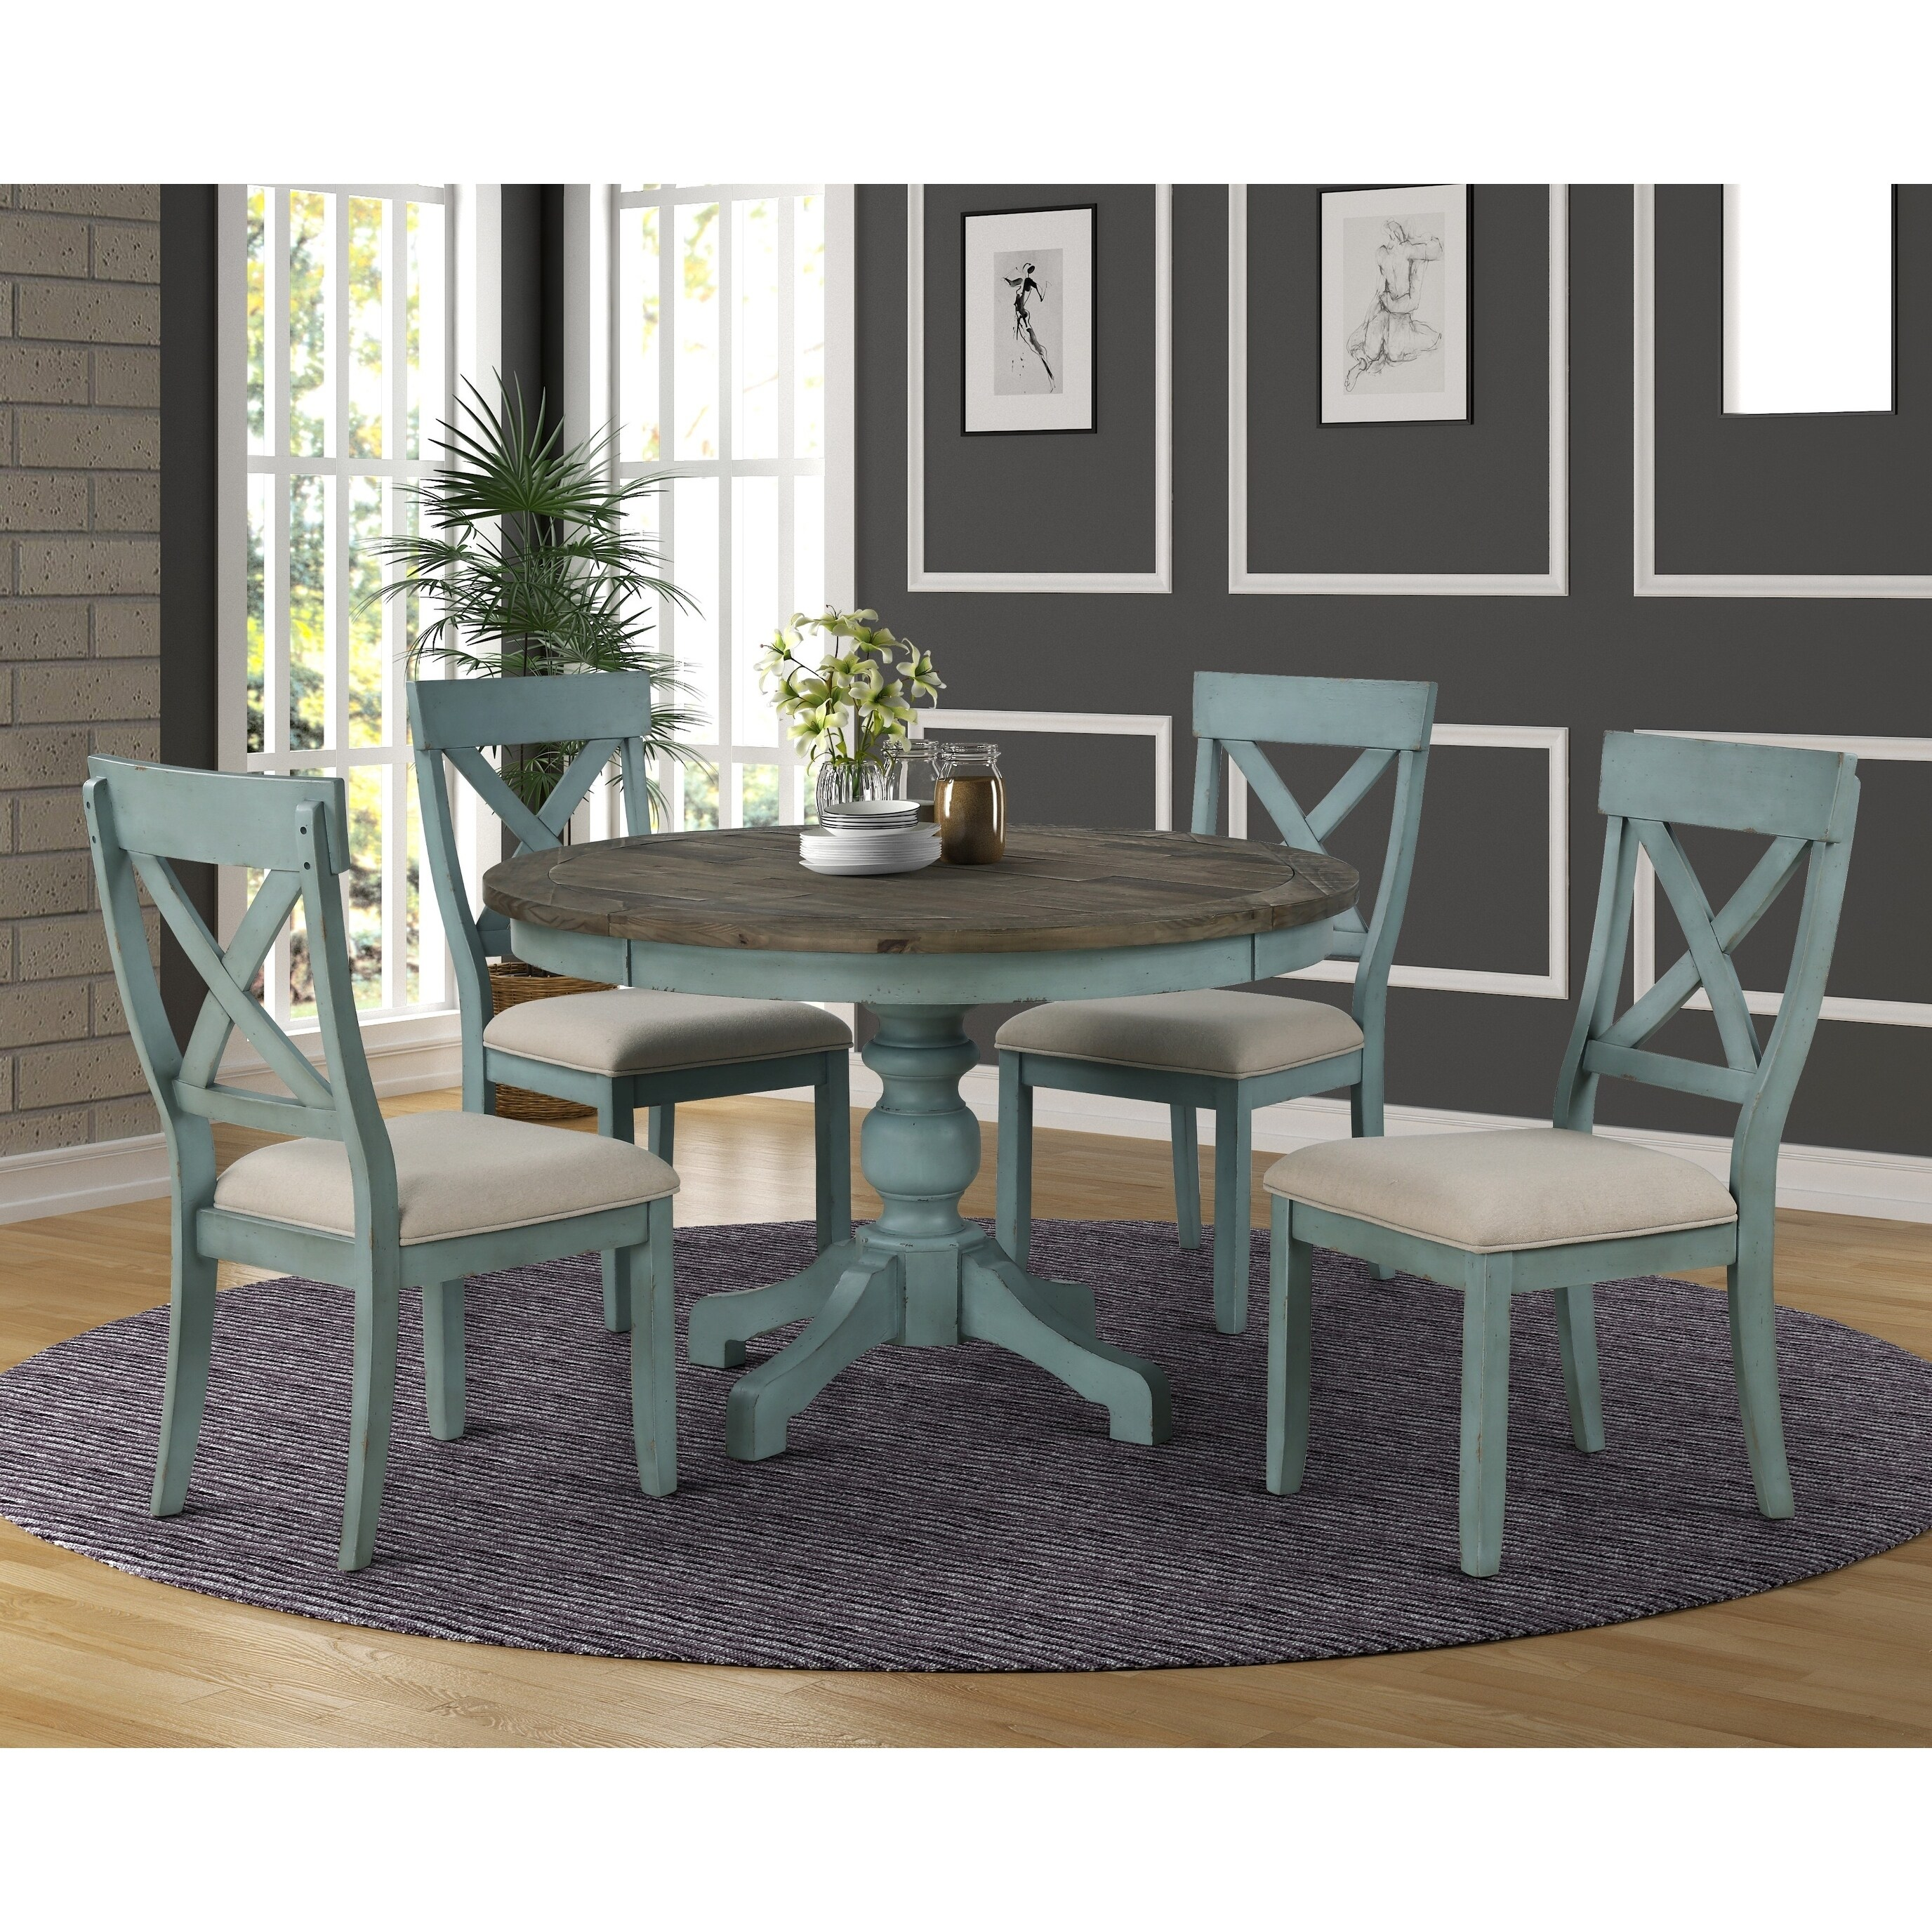 Prato Round Blue And Brown Two Tone Finish Wood Dining Table Overstock 27175695